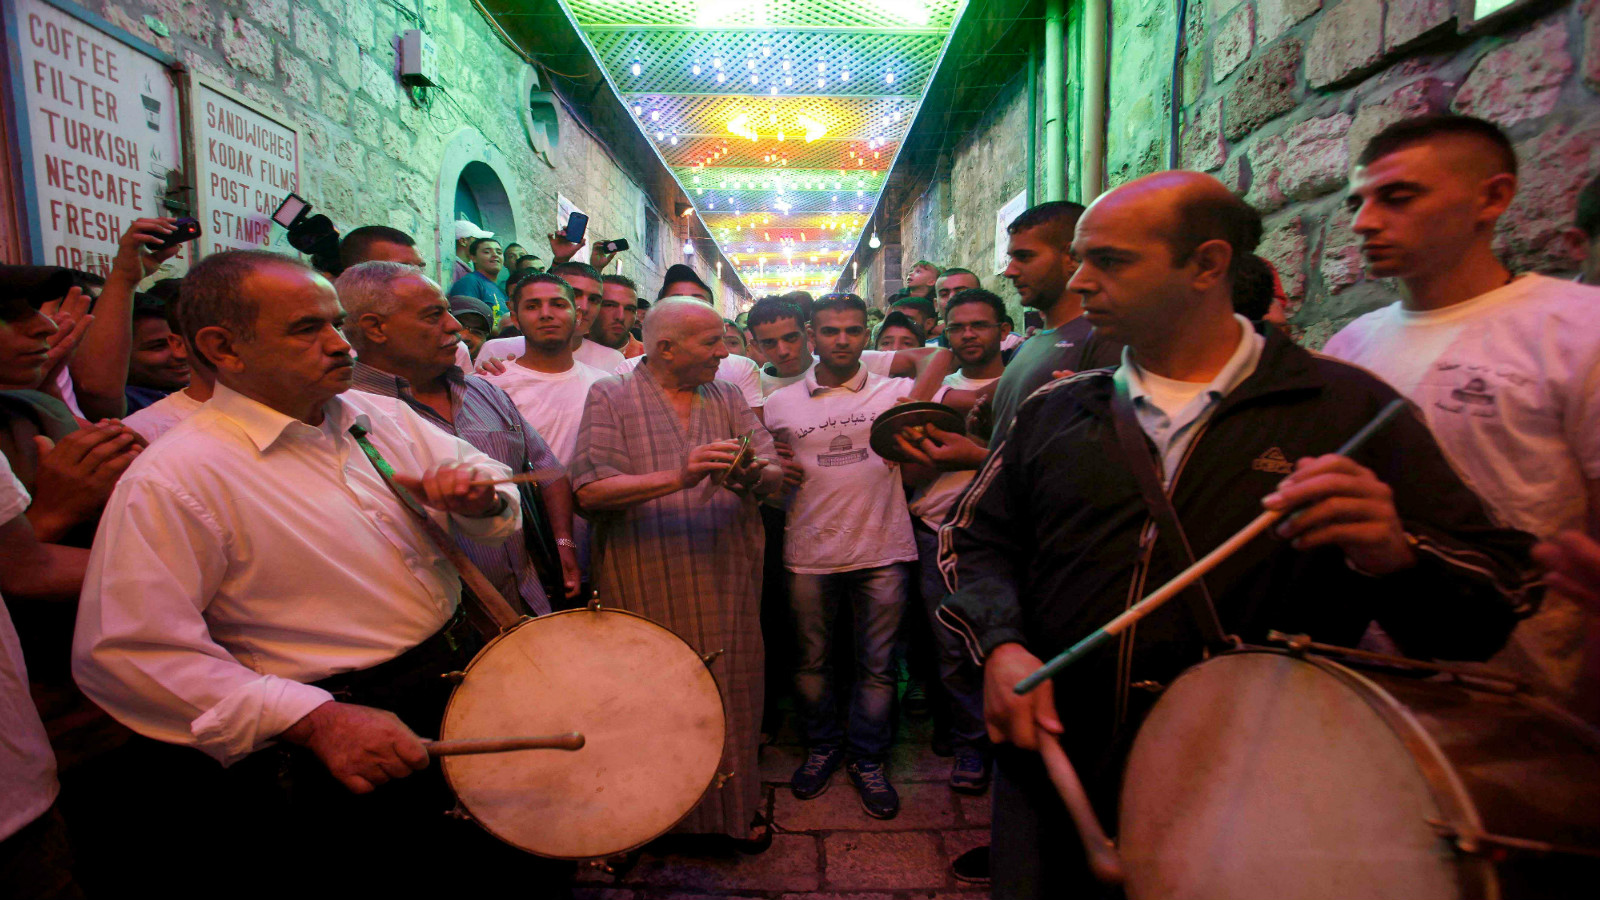 A drumming group gathers on the first night of Ramadan in Jerusalem's Old City. Photo by Sliman Khader/FLASH90